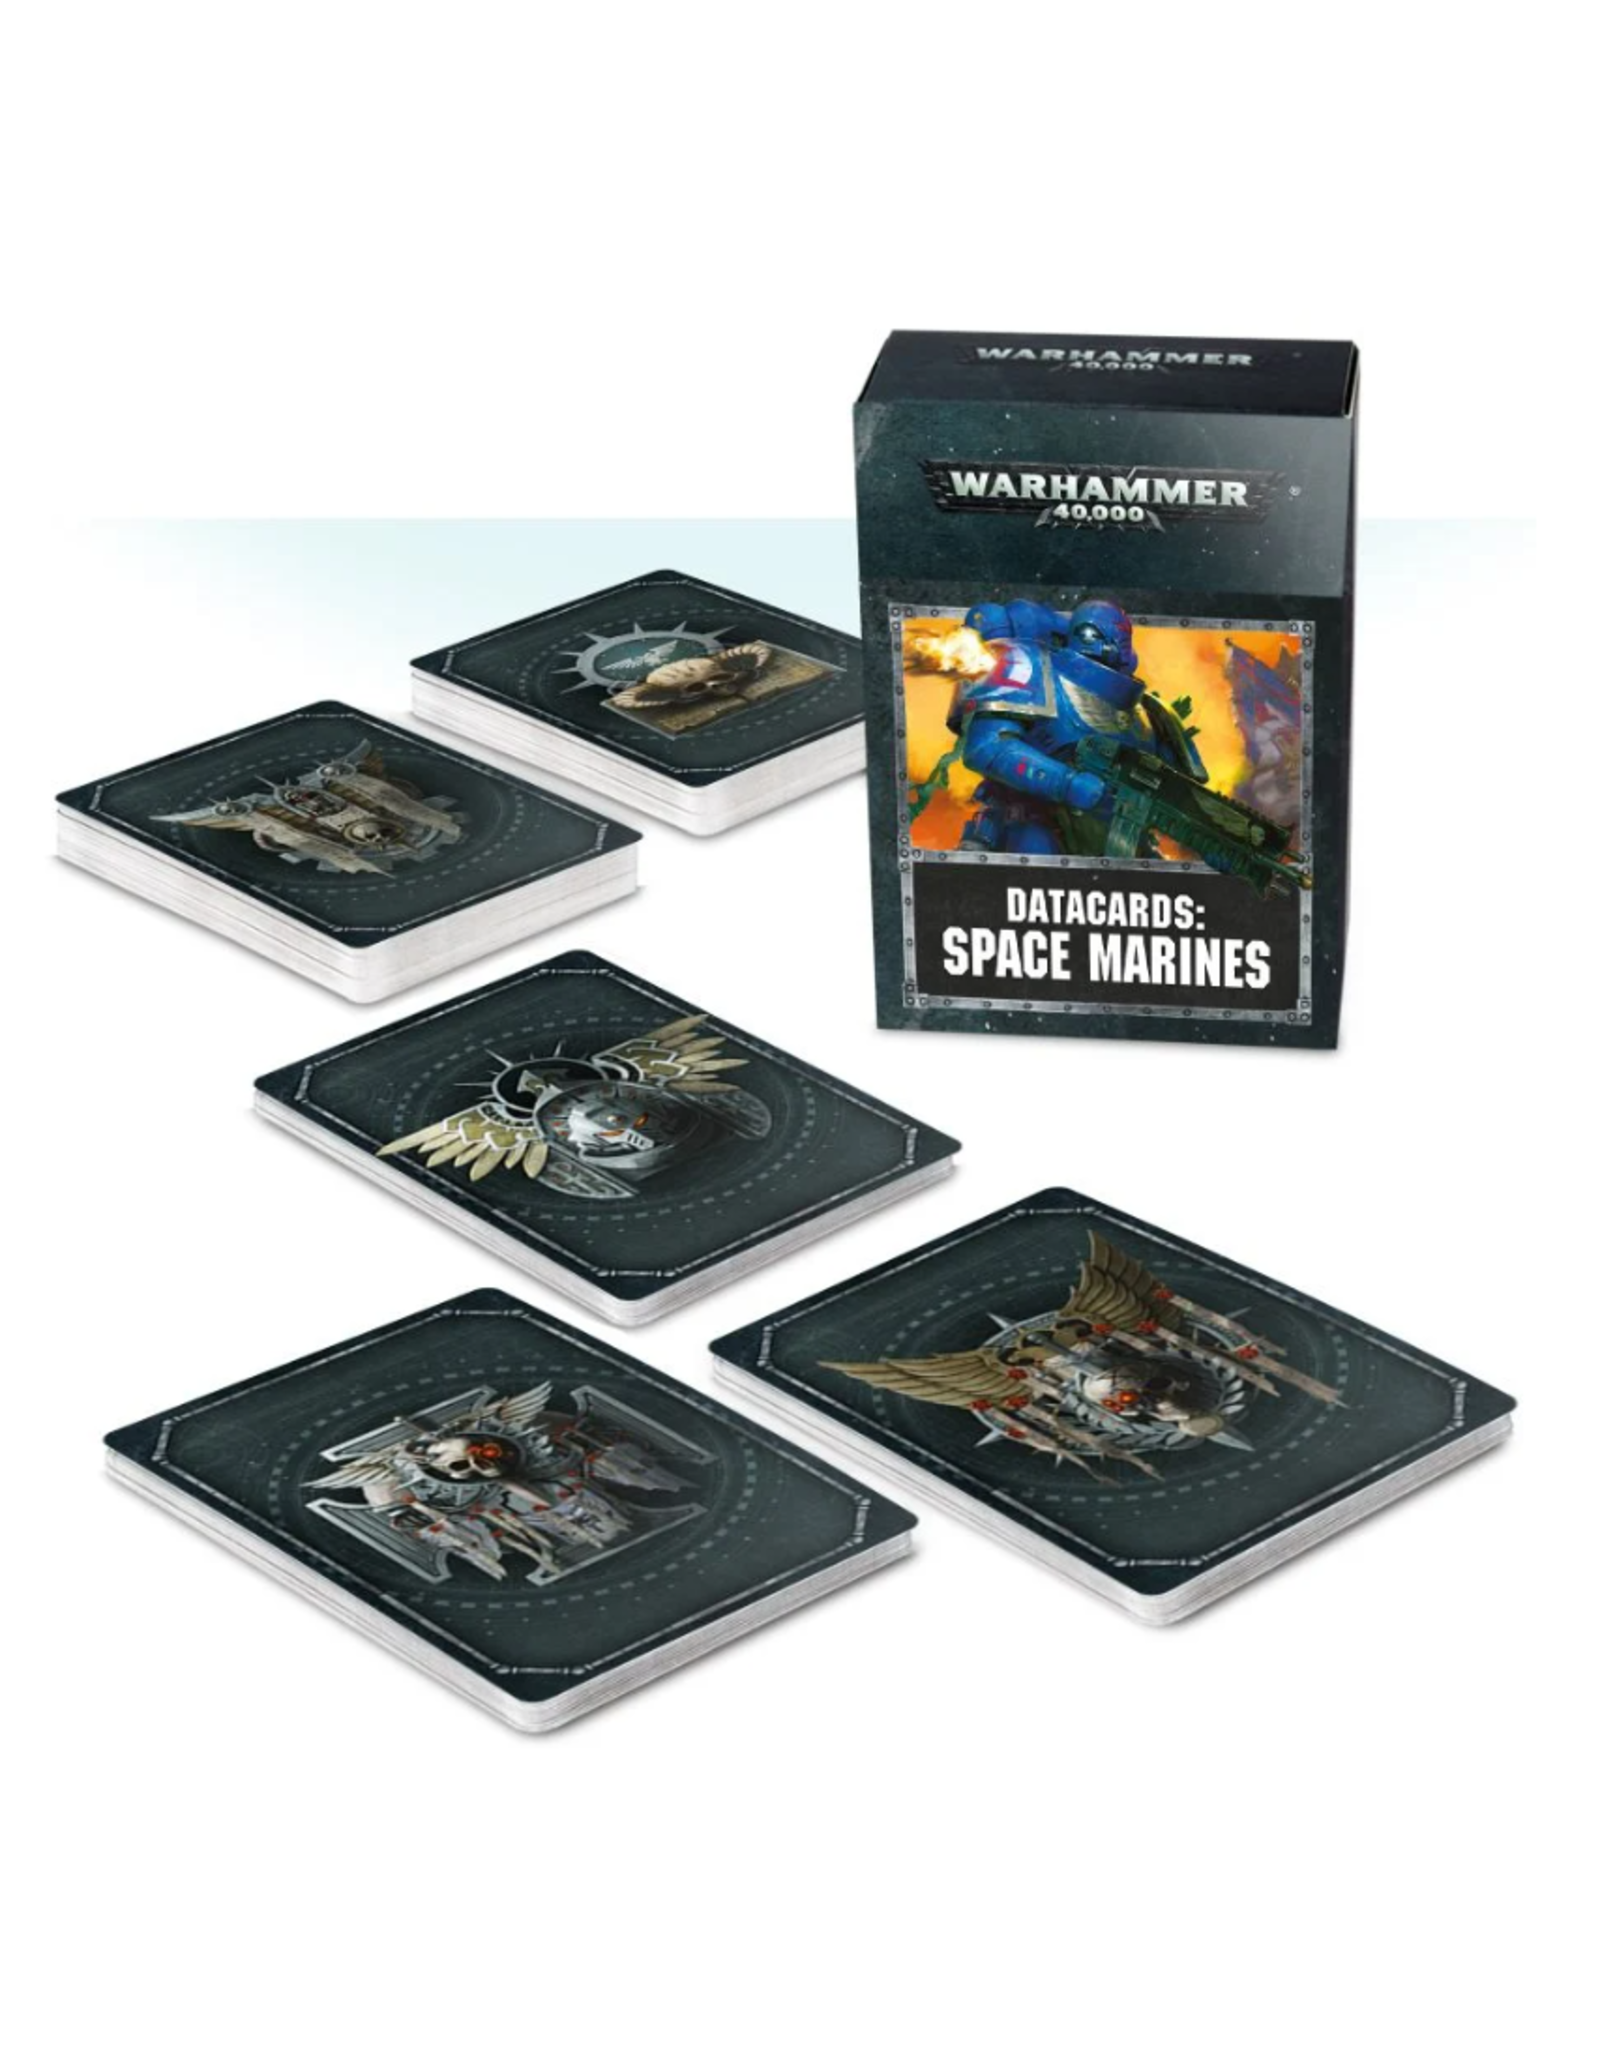 Warhammer 40K Datacards Space Marines